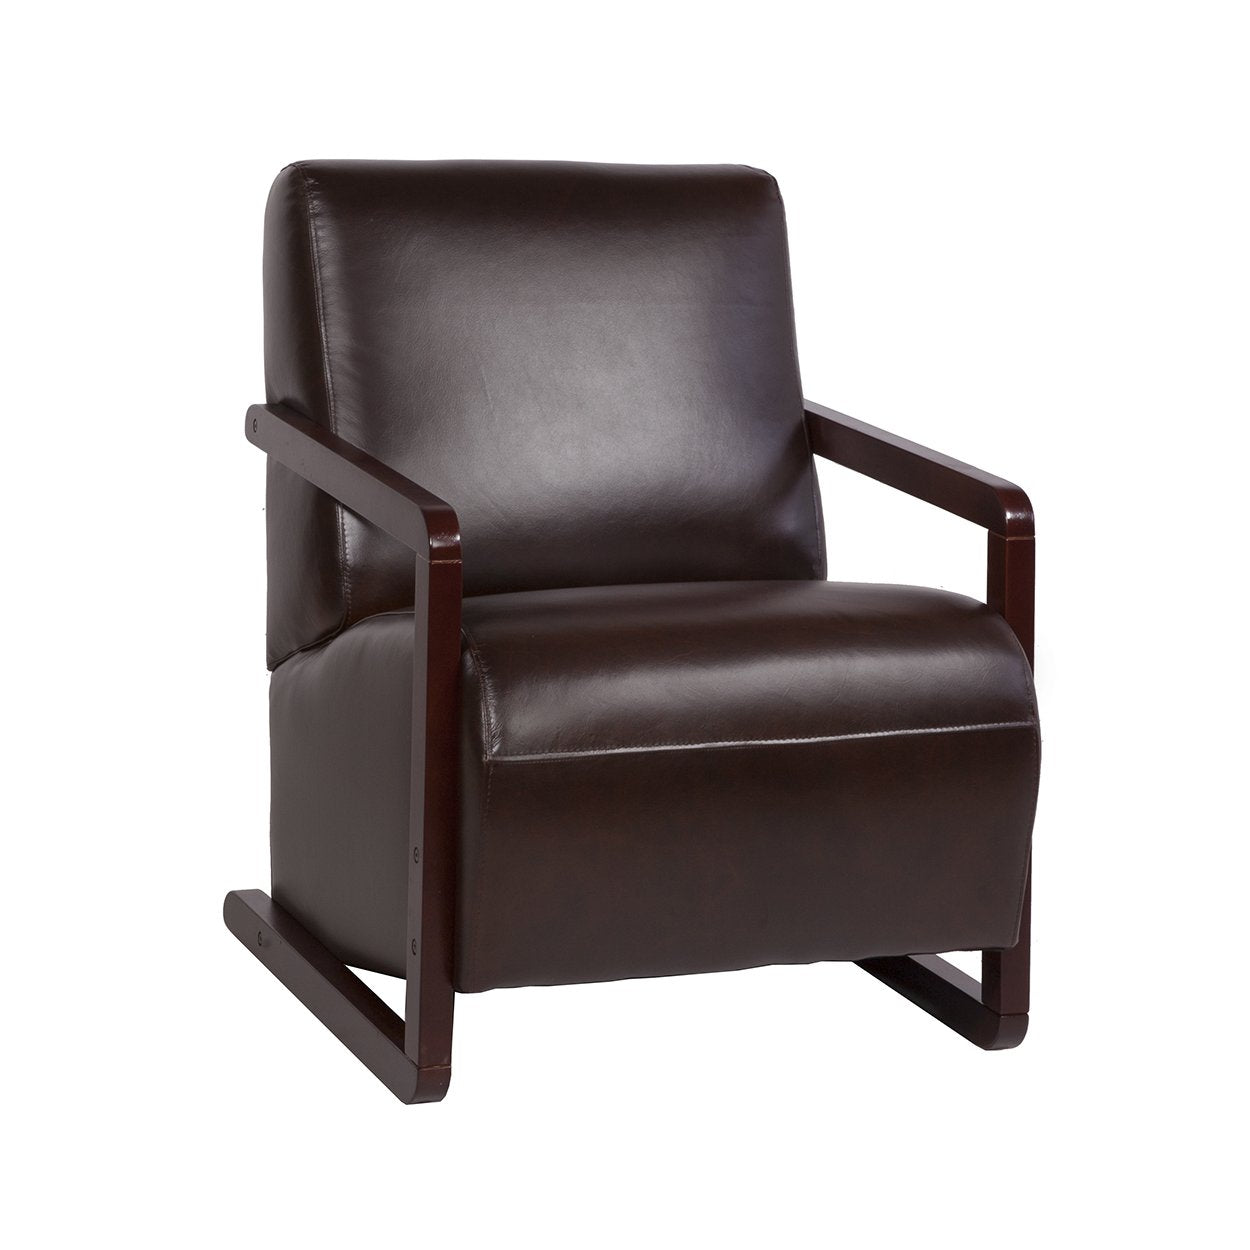 [FUC5170TORI] Modena Lounge Chair